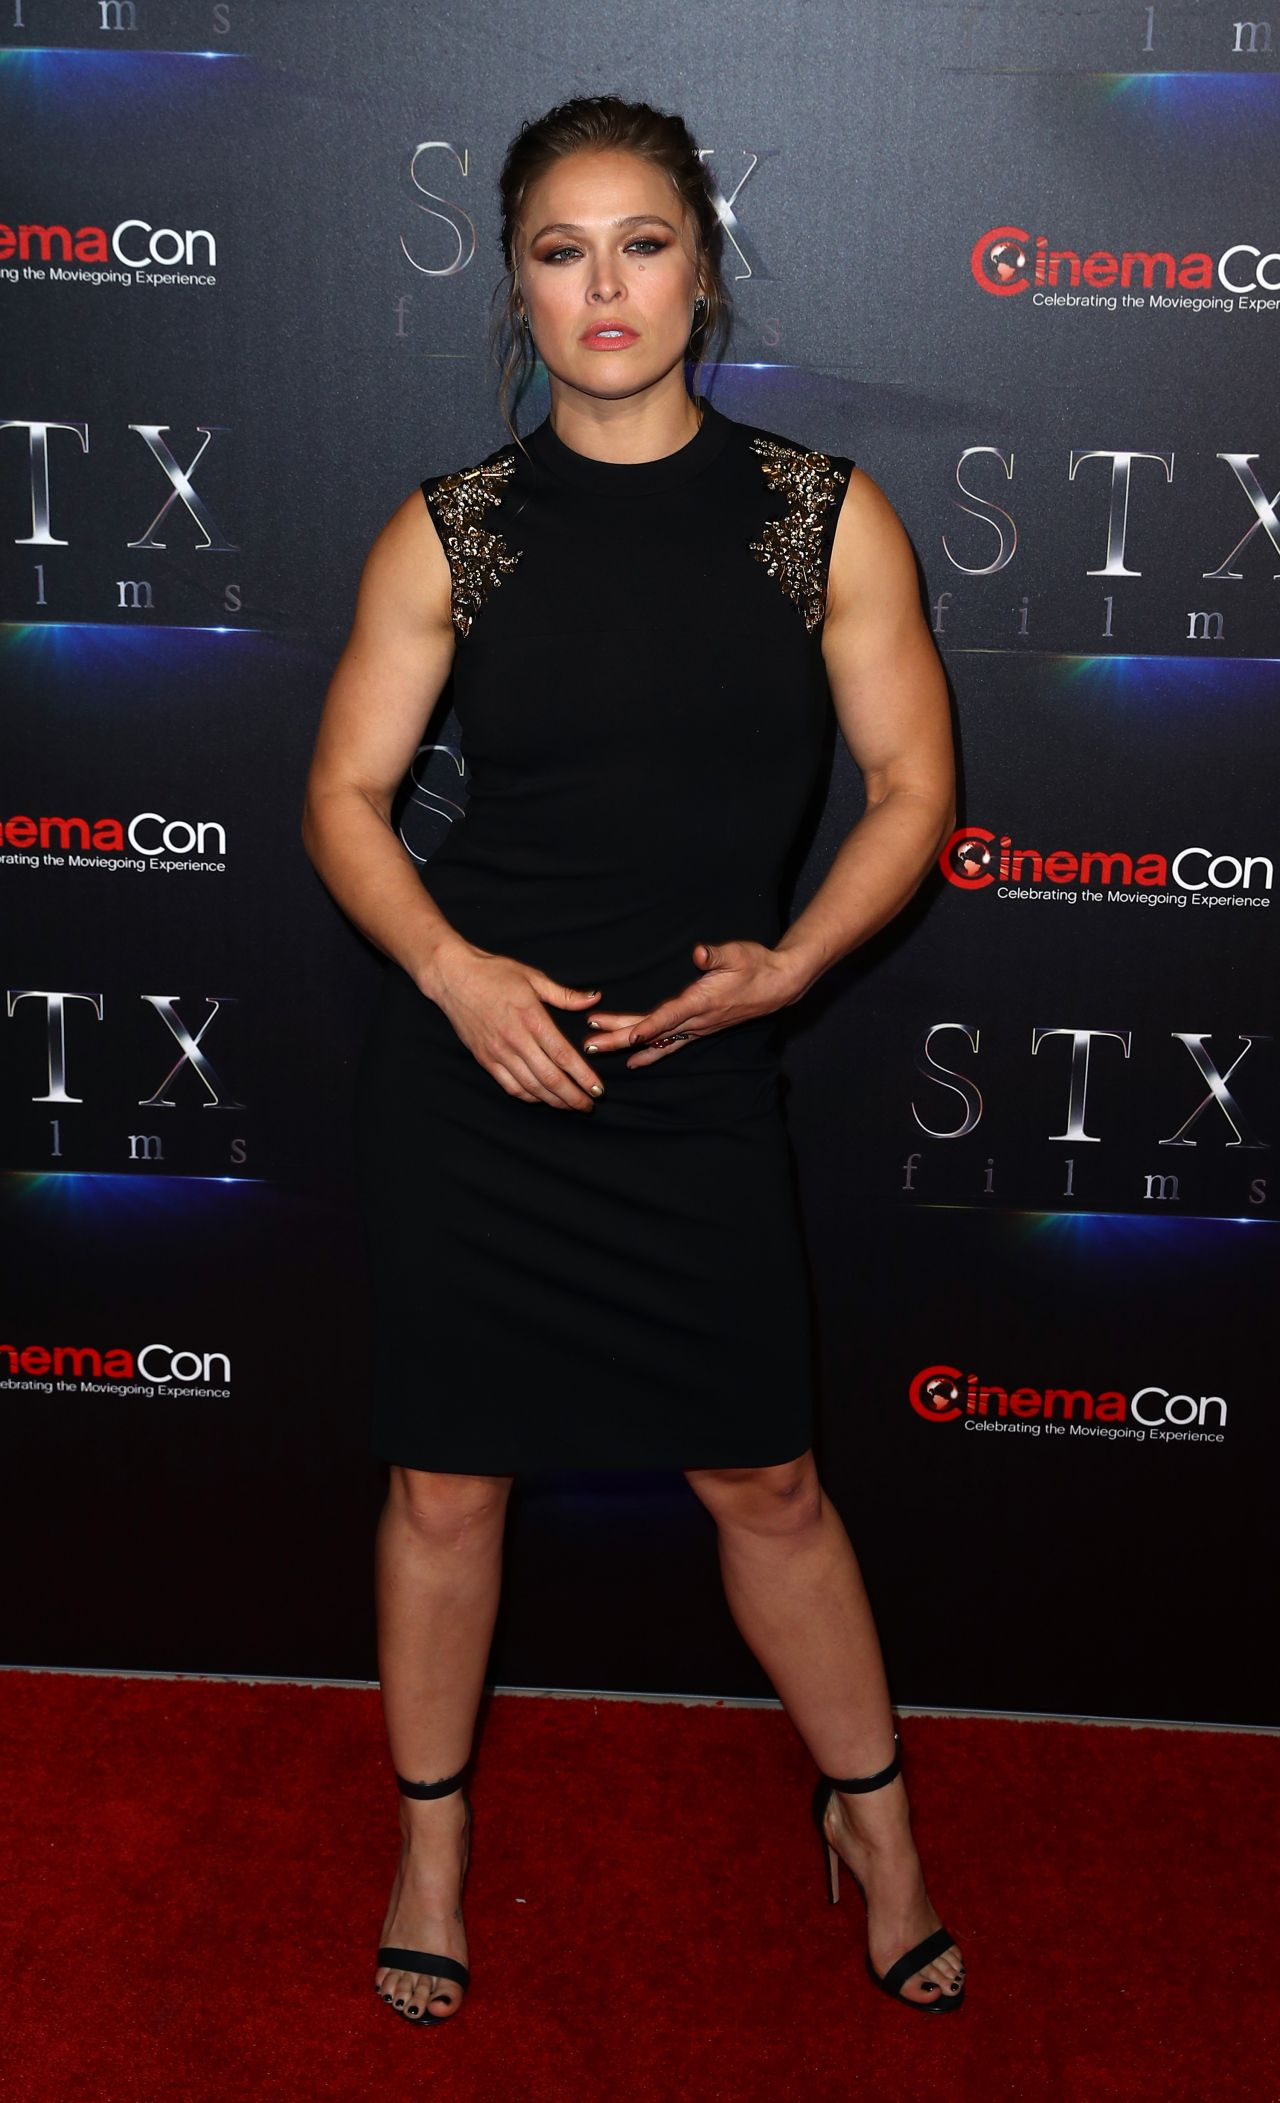 Ronda Rousey Stxfilms Presentation At Cinemacon 2018 In